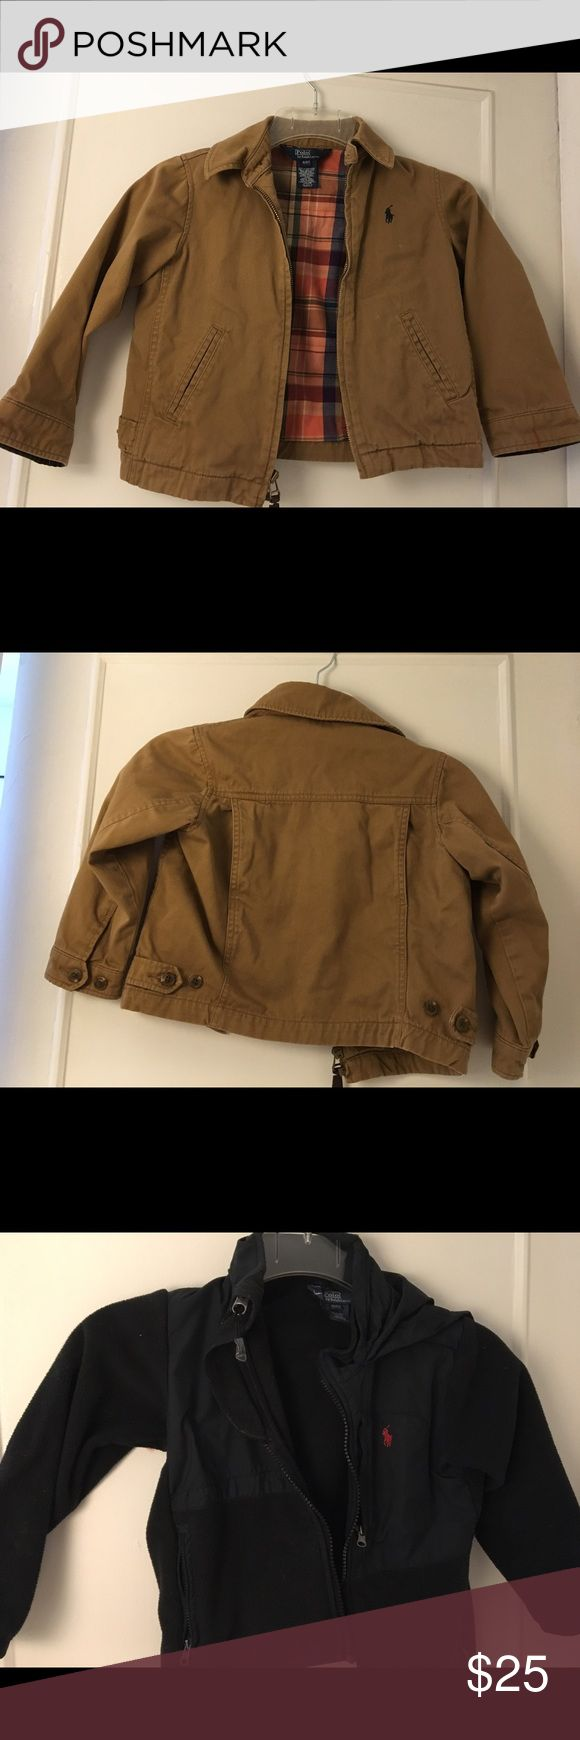 4T Boys Polo Jackets Purchased from Macy's over $50, cutest jacket for your little man Polo by Ralph Lauren Jackets & Coats